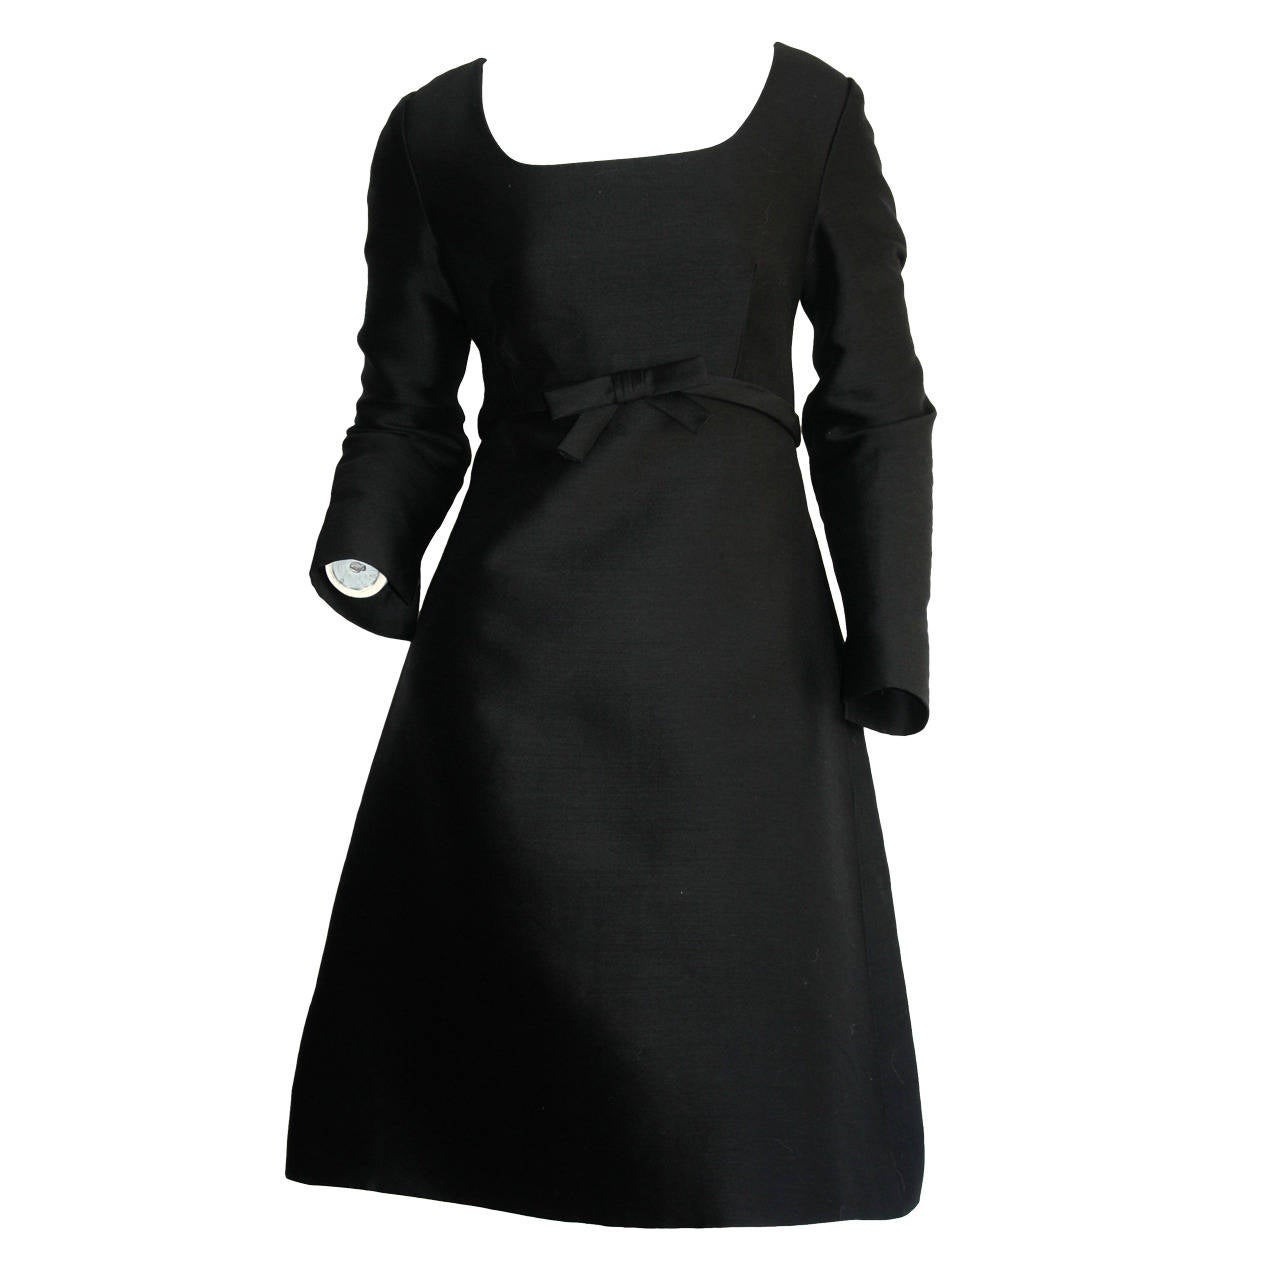 Suzy Perette 1960s Vintage Raw Silk Black Empire Bell Dress